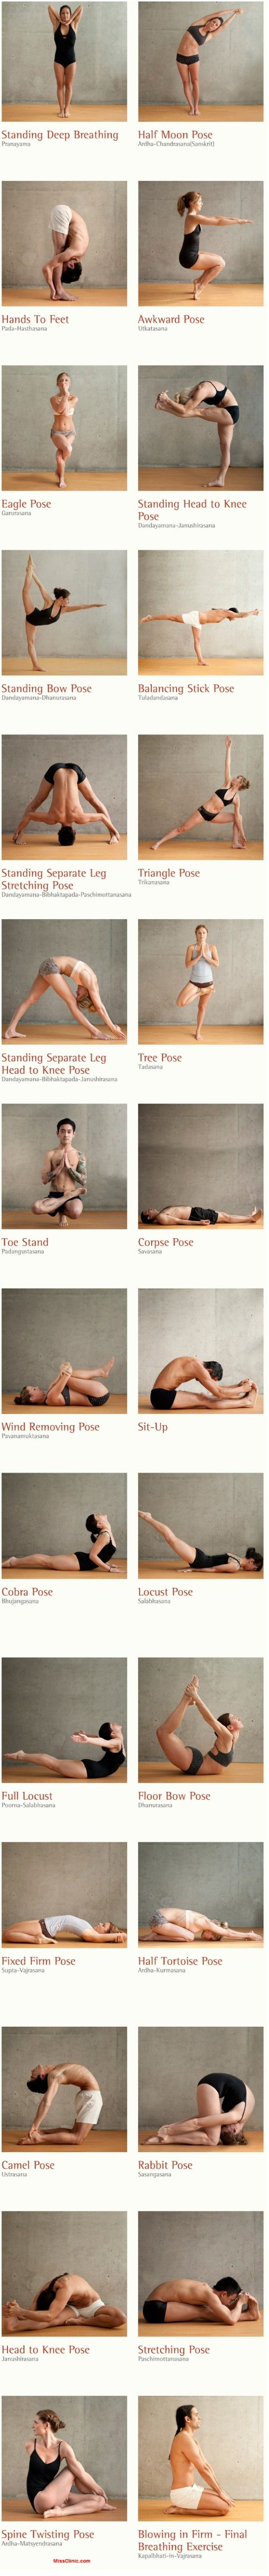 The 26 bikram yoga poses and 2 breathing exercises. A nice morning routine